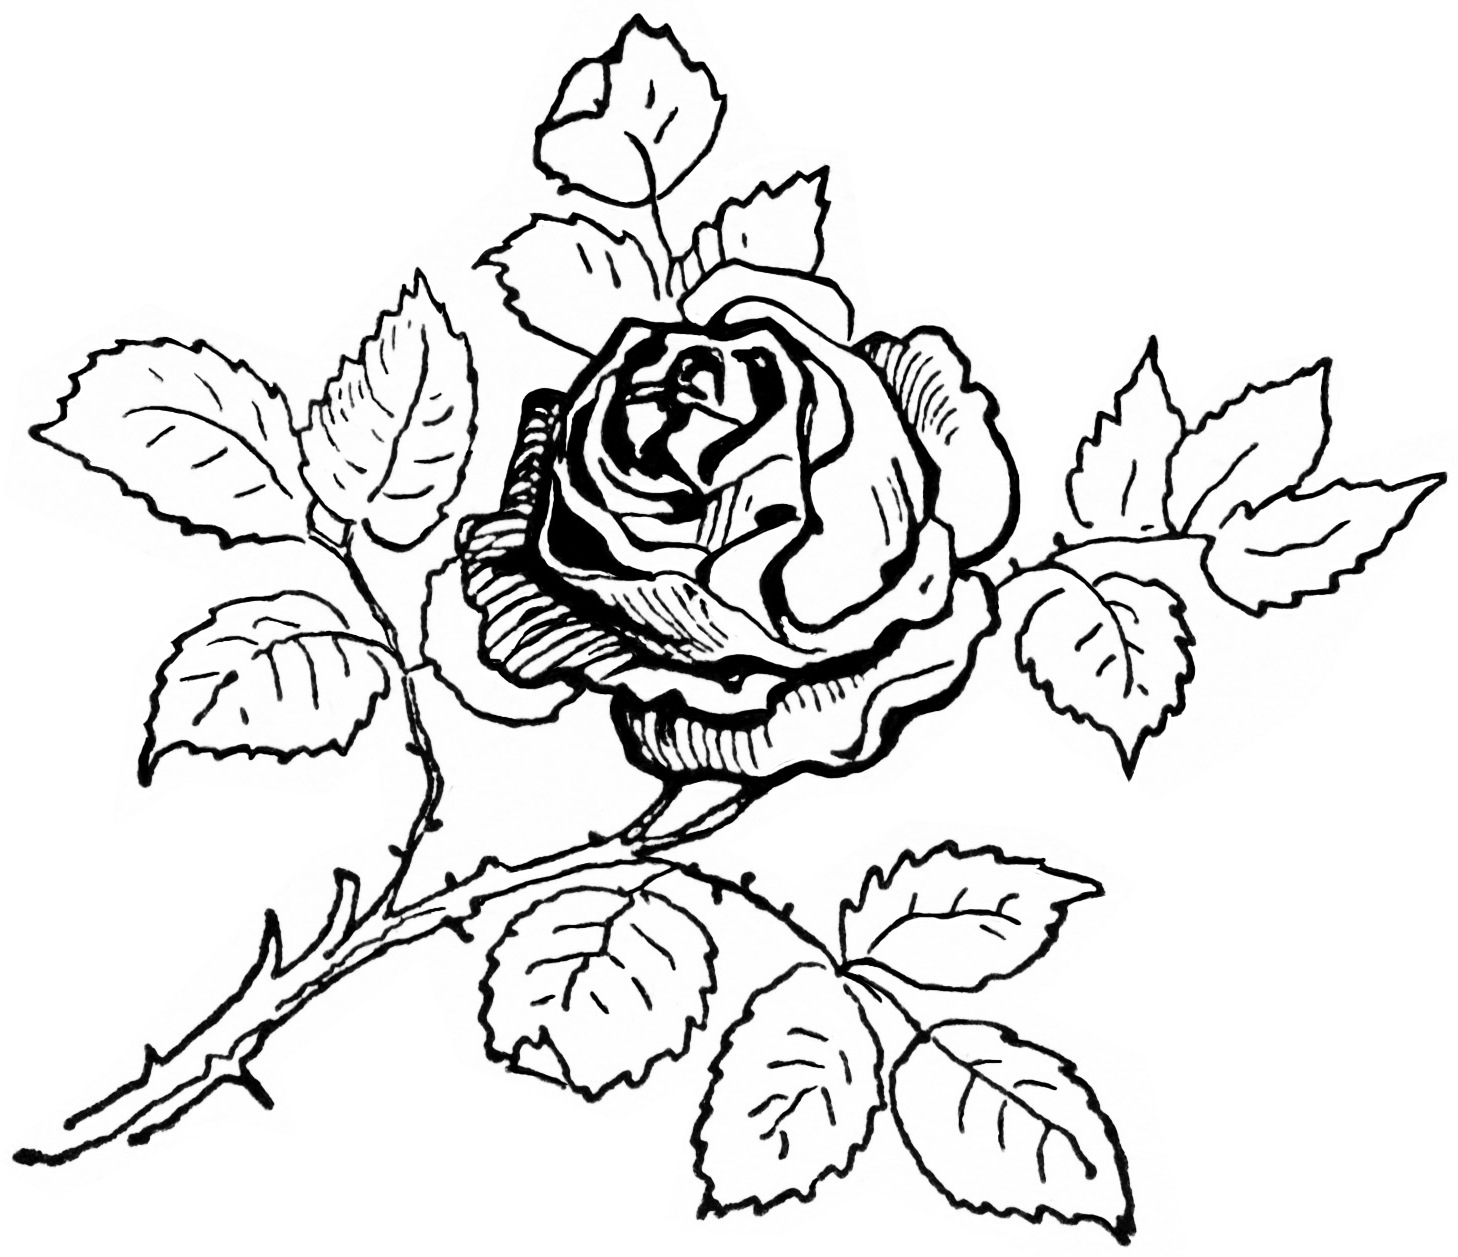 real heart coloring pages real heart coloring pages at getcoloringscom free coloring real heart pages